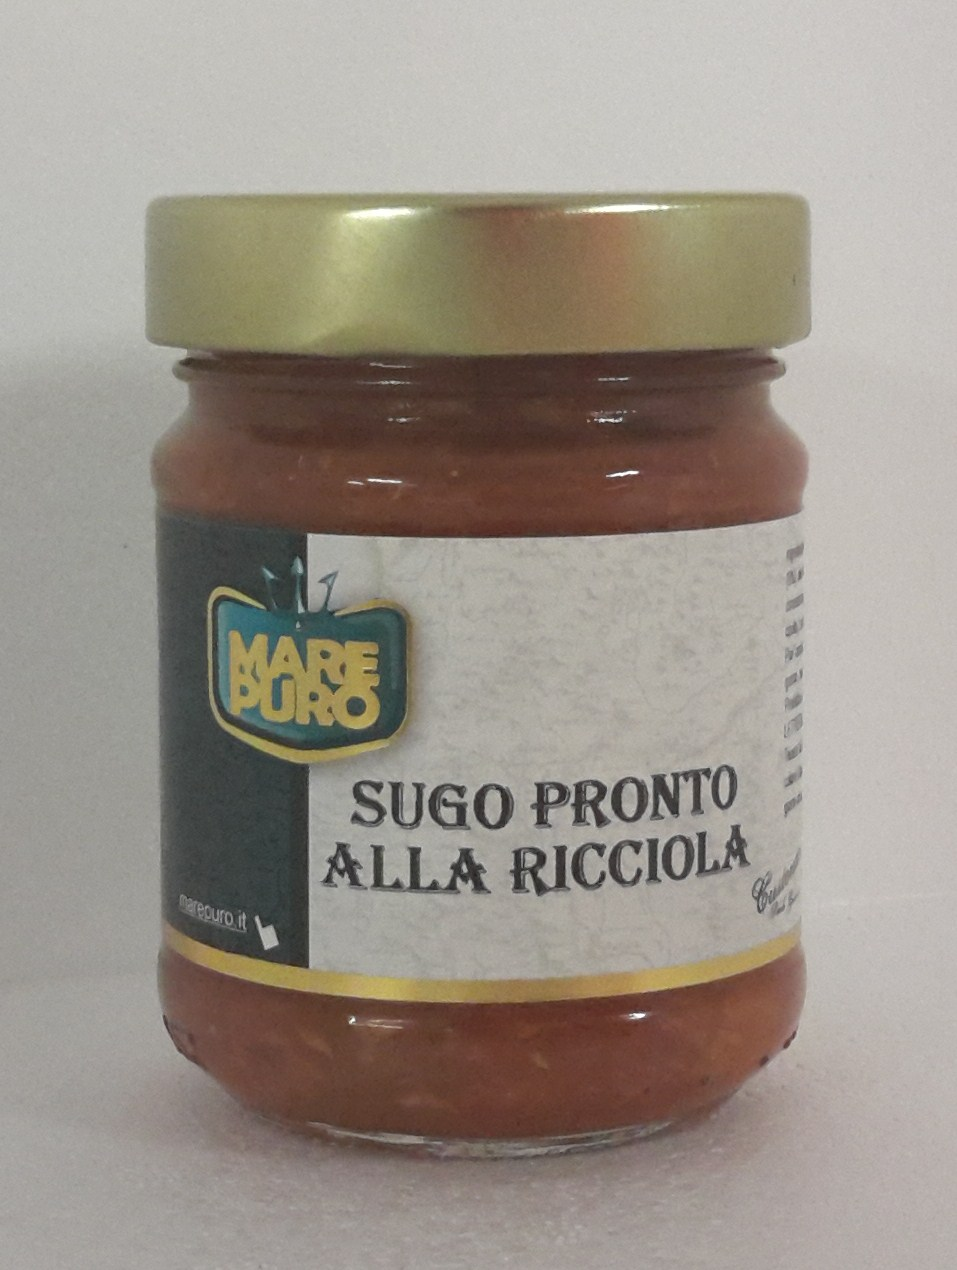 Die Bottarga di Tonno Group